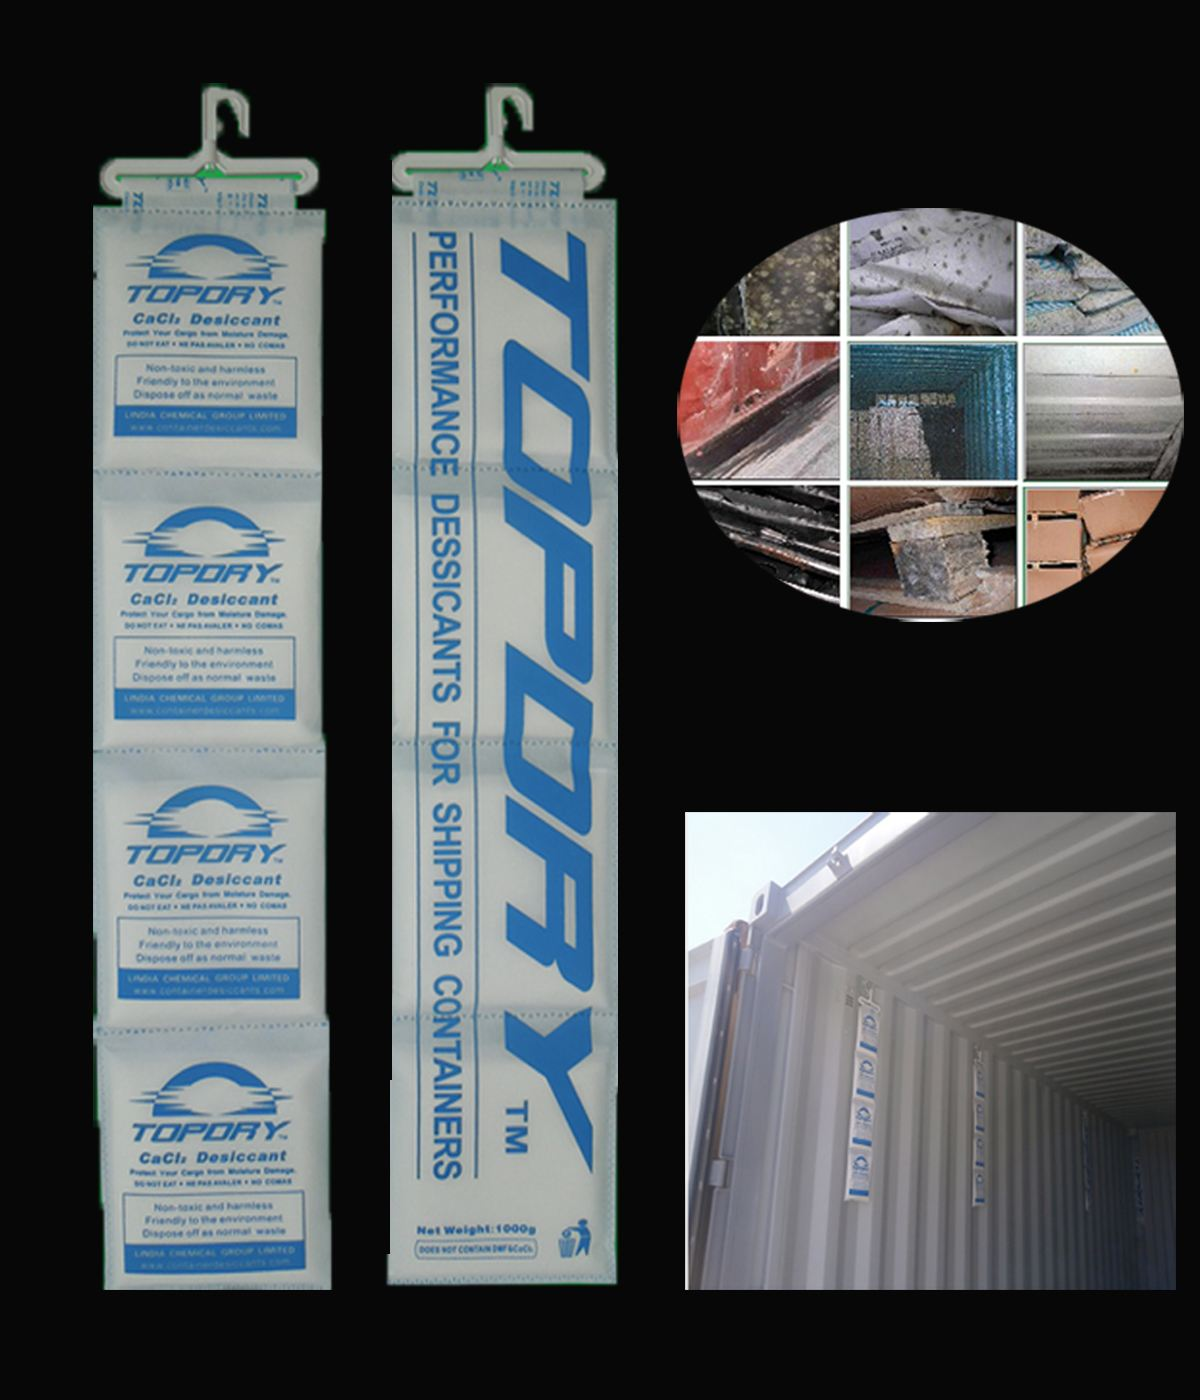 300% moisture rate hanging strip pack super dry calcium chloride container desiccant